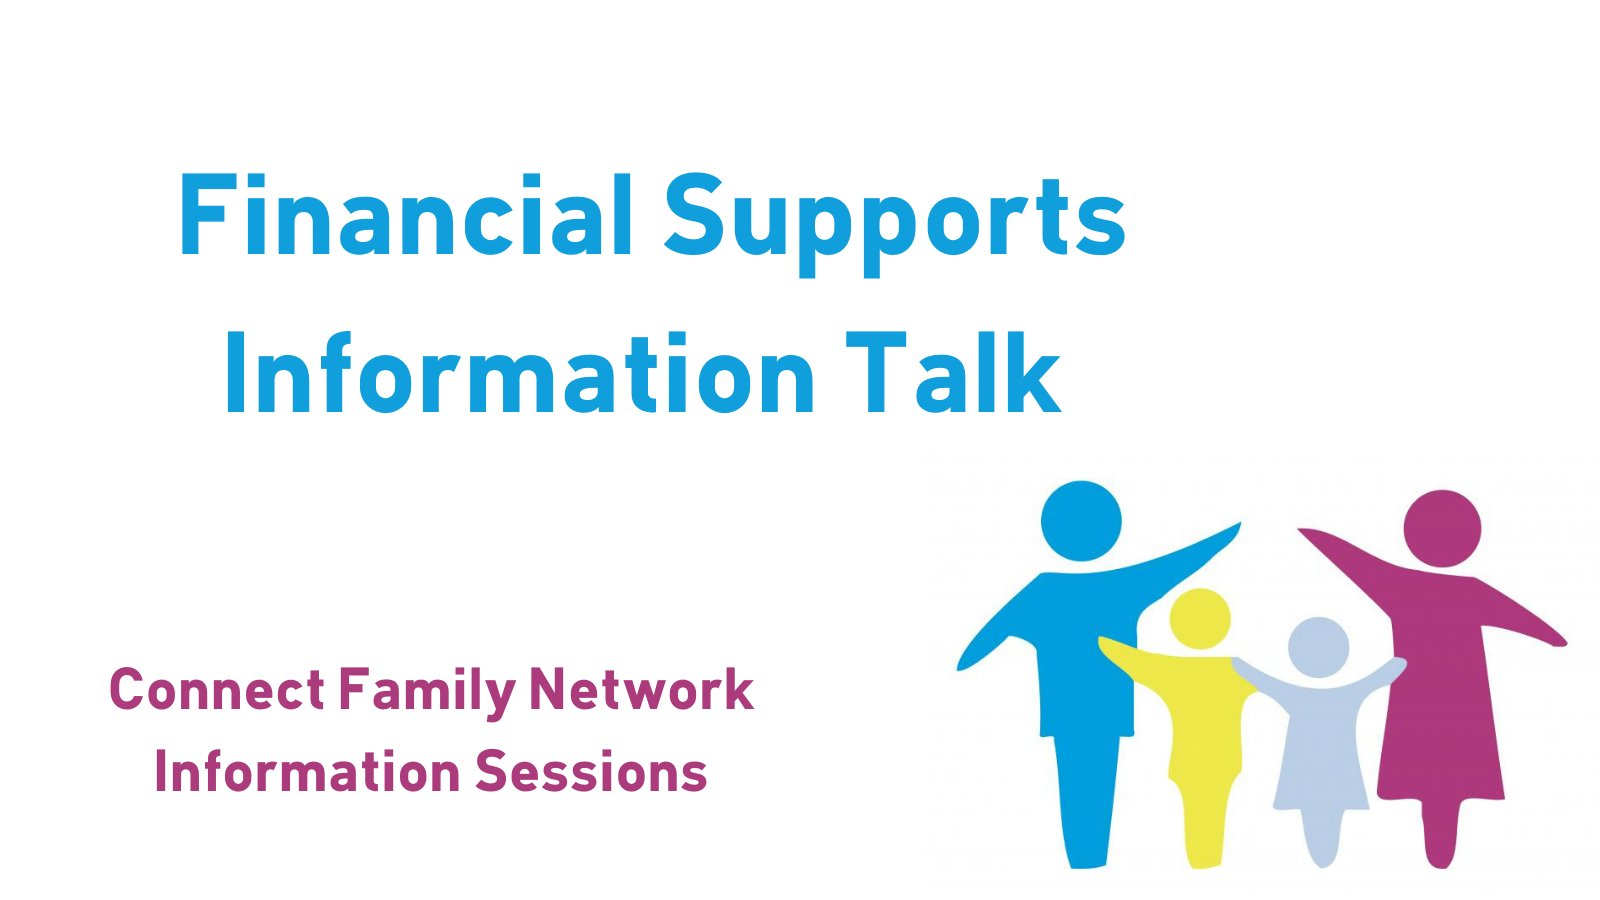 Connect Family Network Financial Supports Information Talk flyer